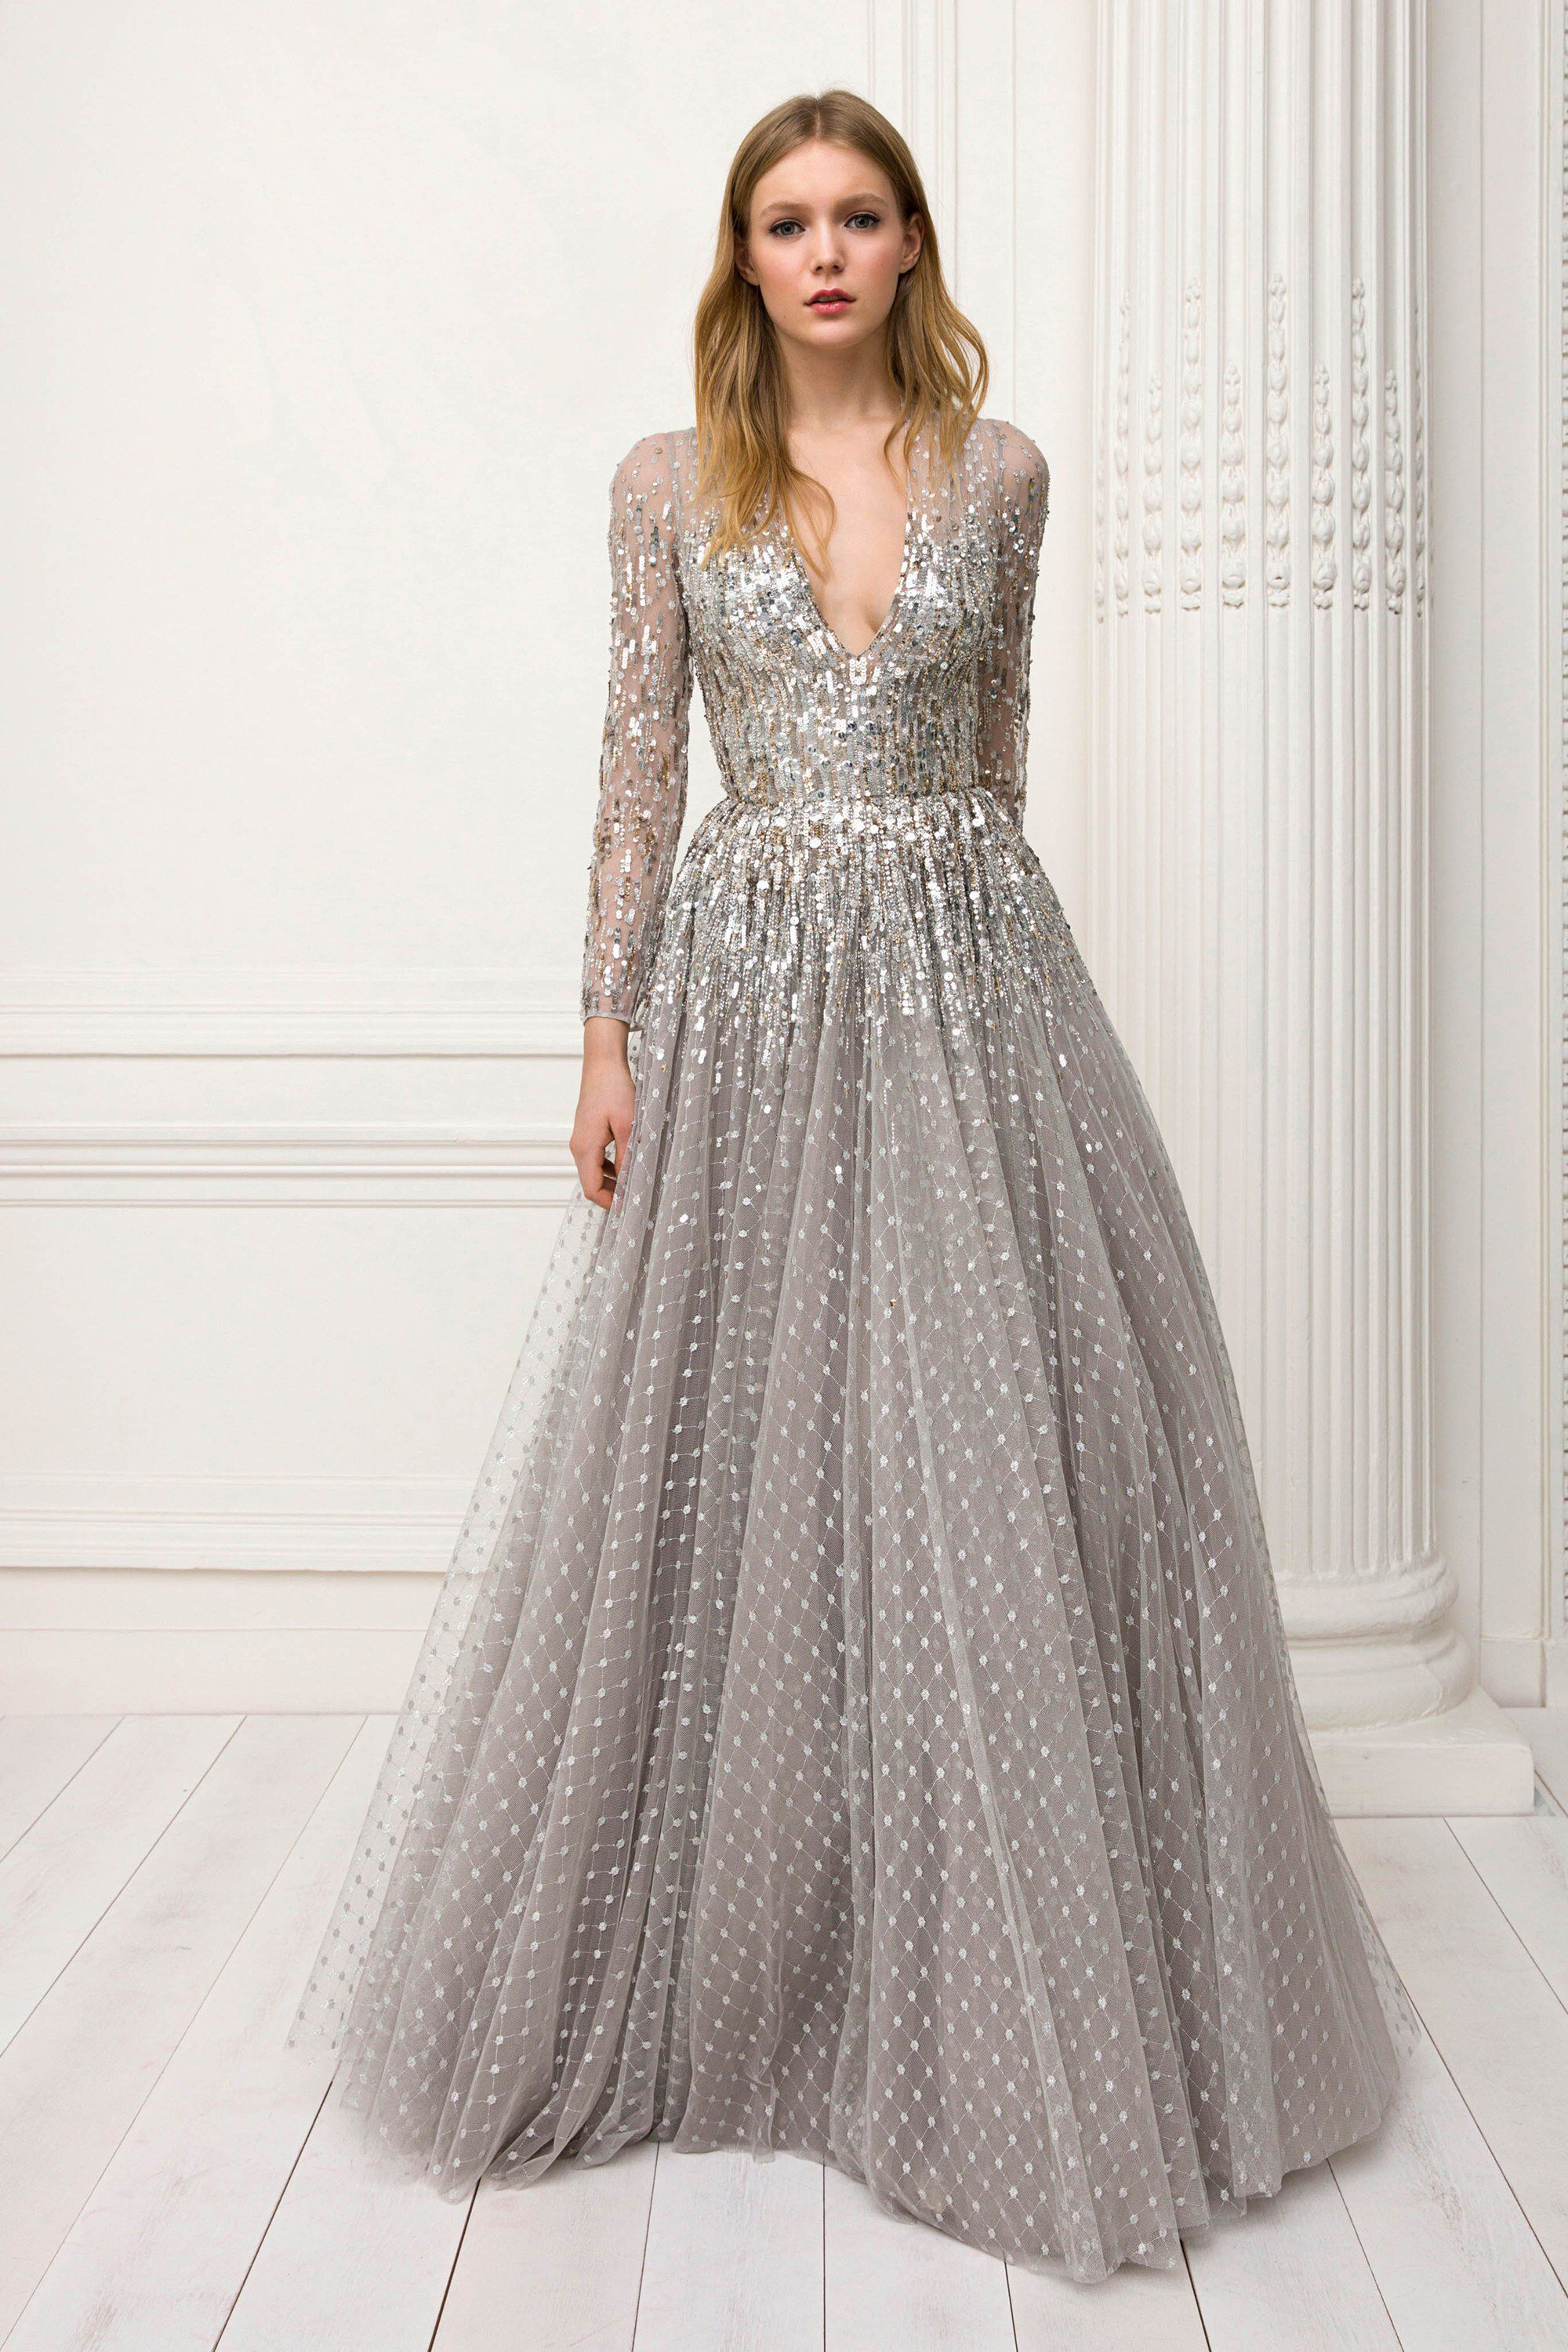 Jenny Packham Pre Fall 2018 Im Obsessed With The Grey Gown With A